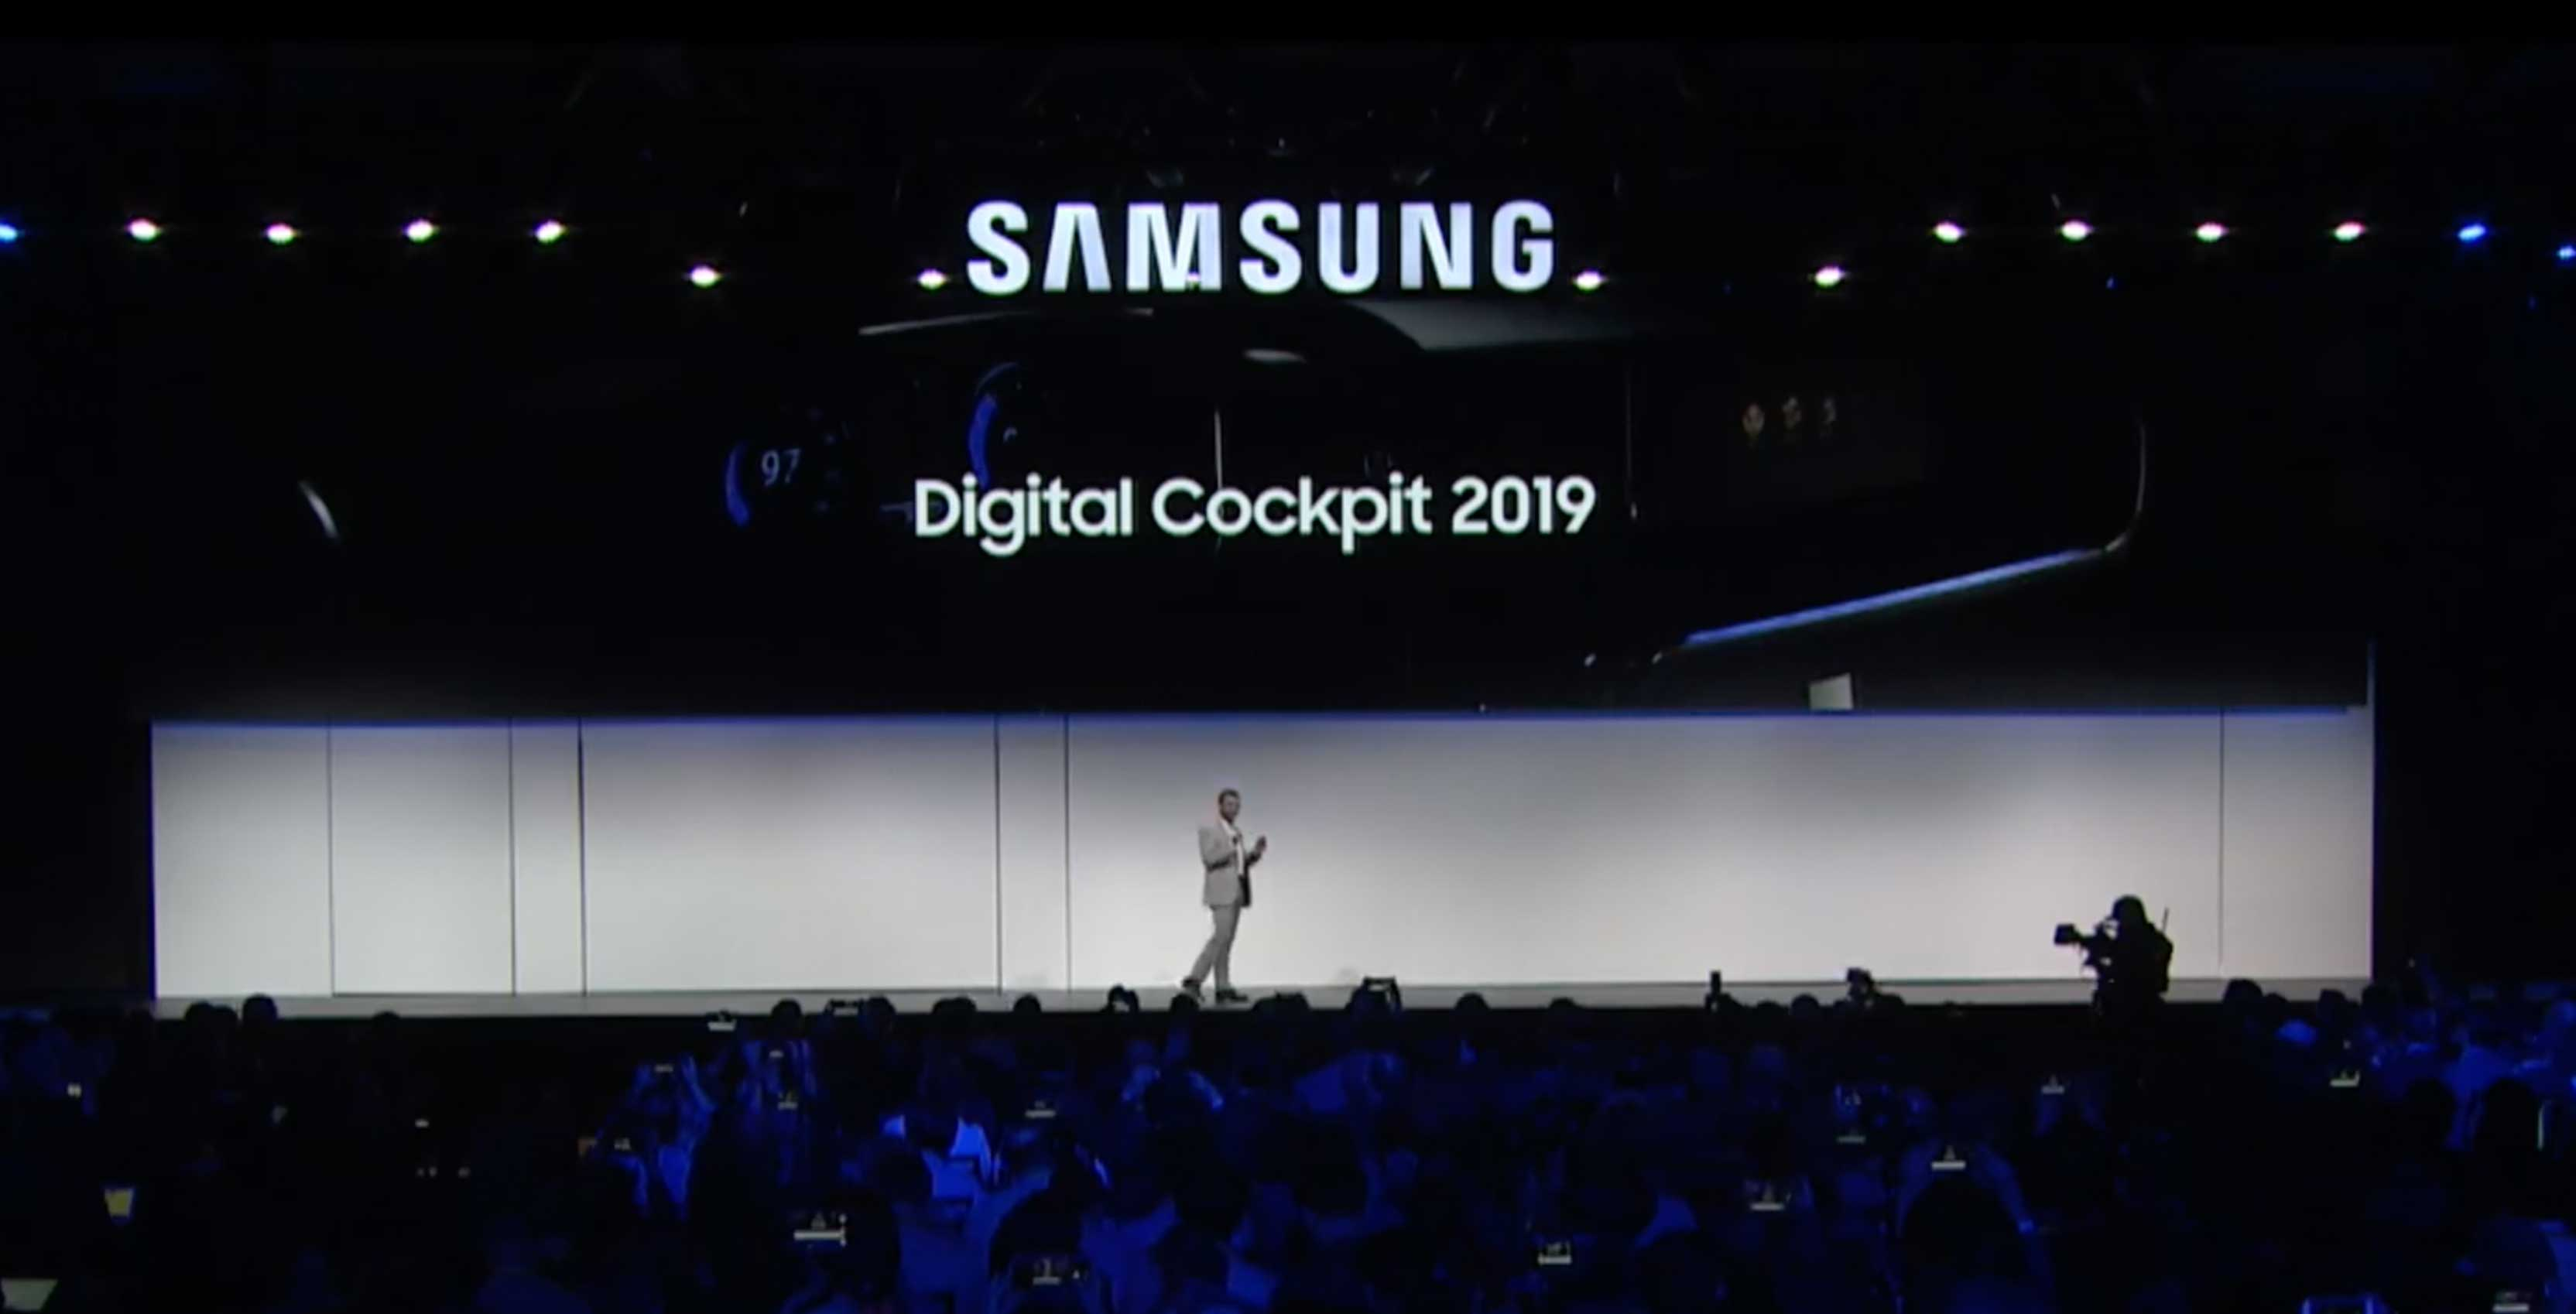 Surprise! Samsung Quietly Showed a 5G Phone at CES